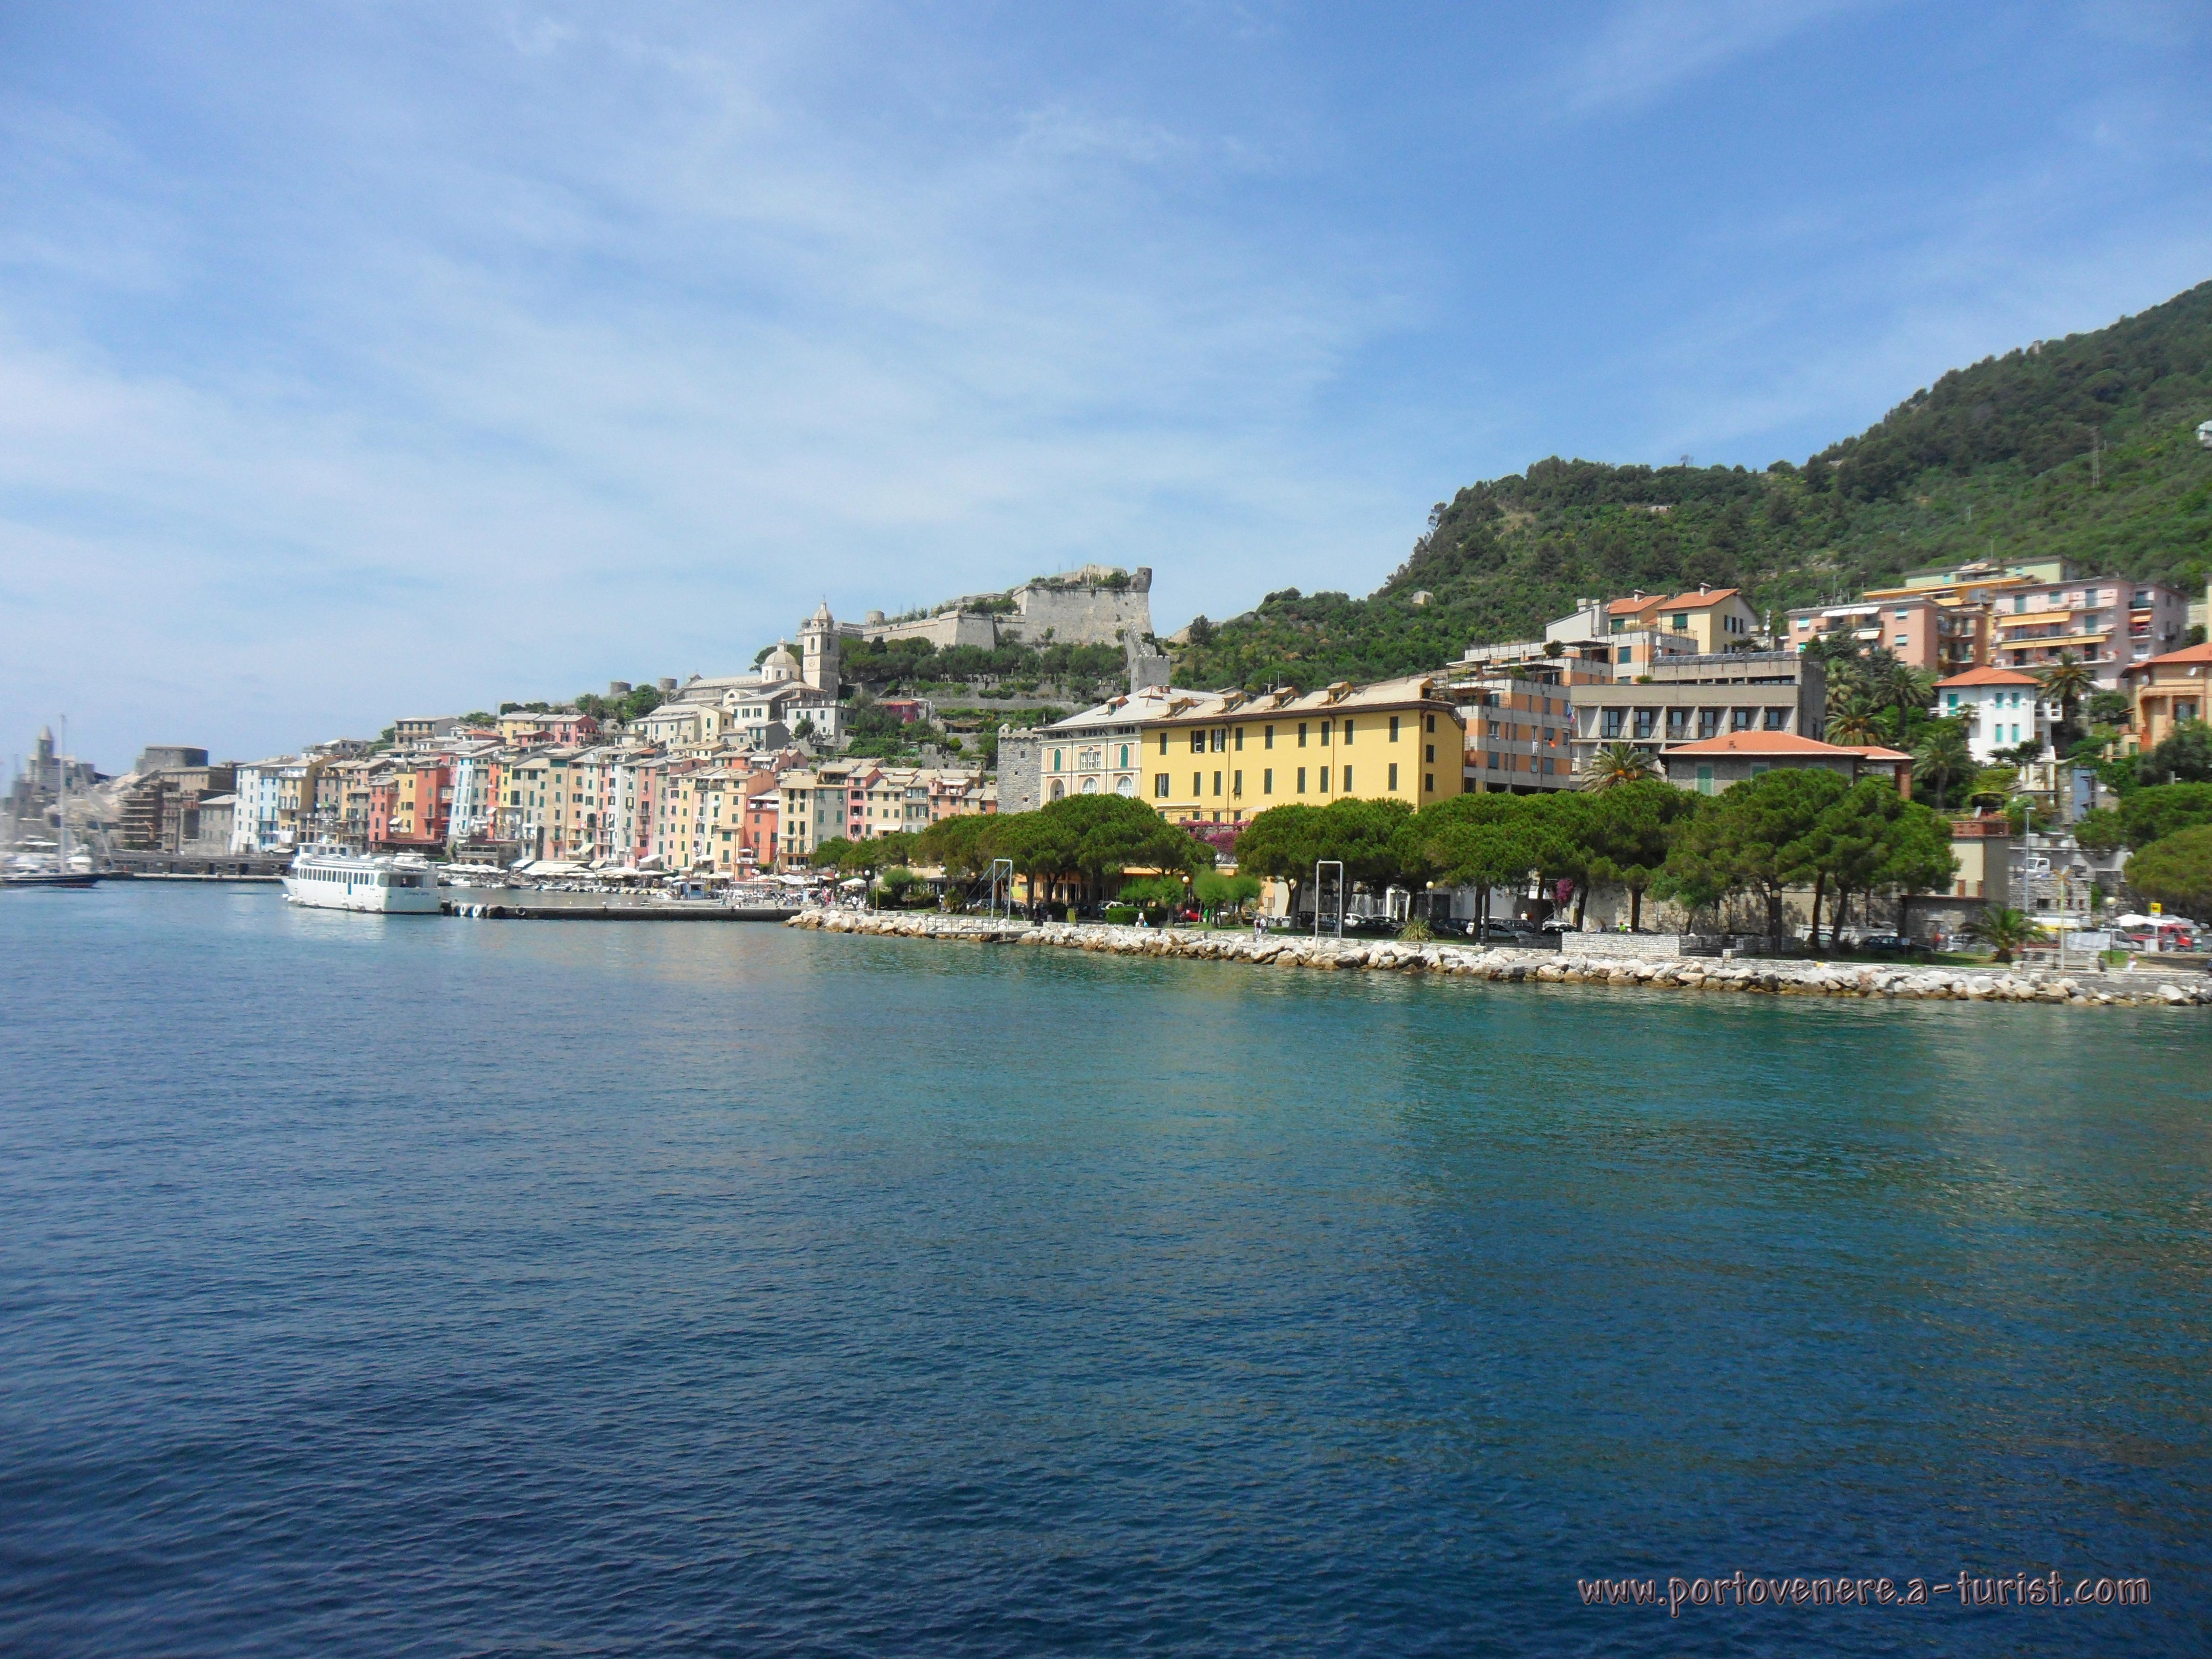 Portovenere - Arriving to the city from La Spezia<br>4320x3240, 1.66 MB